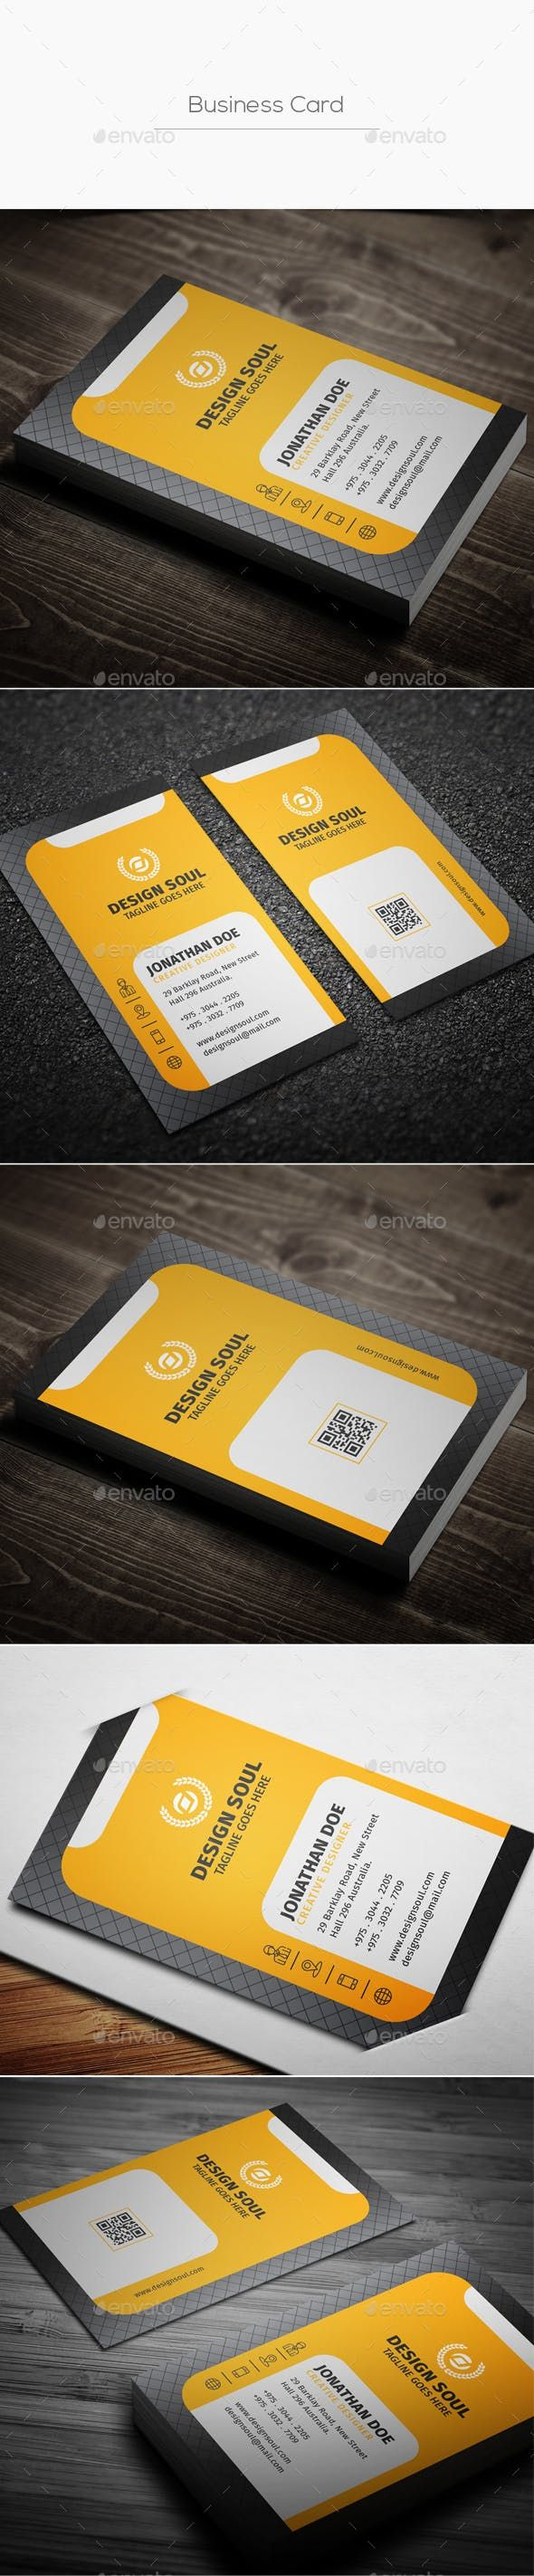 Business Card 3business Cards Print Templates Printing Business Cards Business Card Template Psd Sample Business Cards